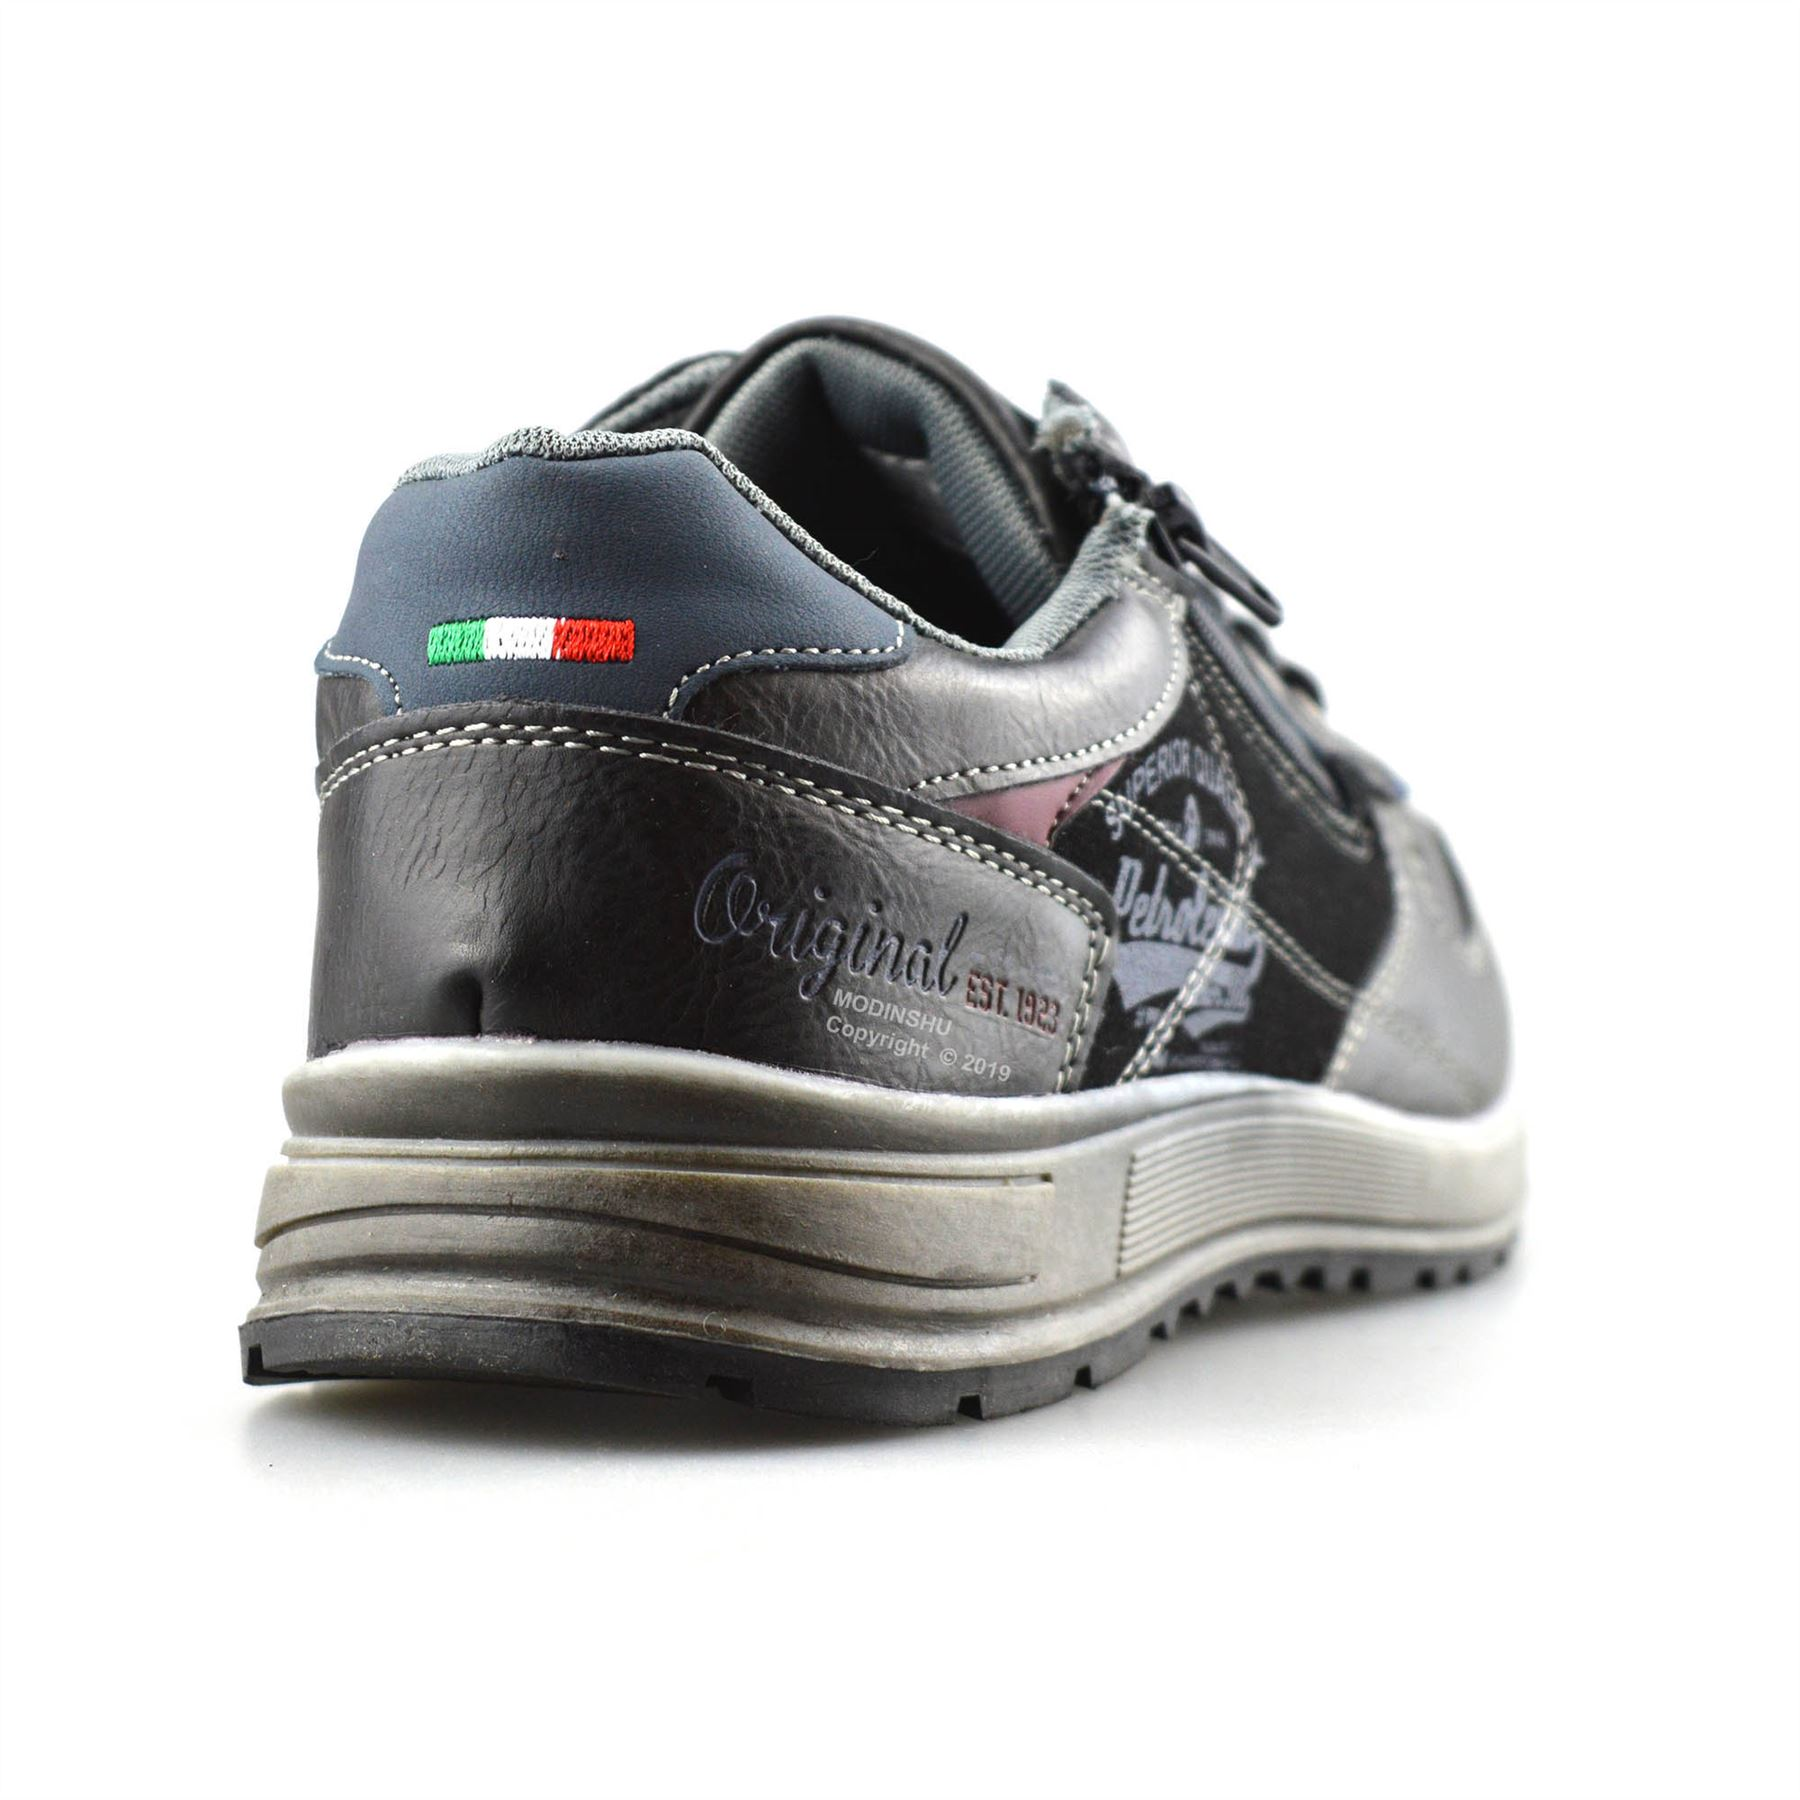 Mens-Casual-Zip-Lace-Up-Walking-Running-Hiking-Sports-Gym-Trainers-Shoes-Size thumbnail 10